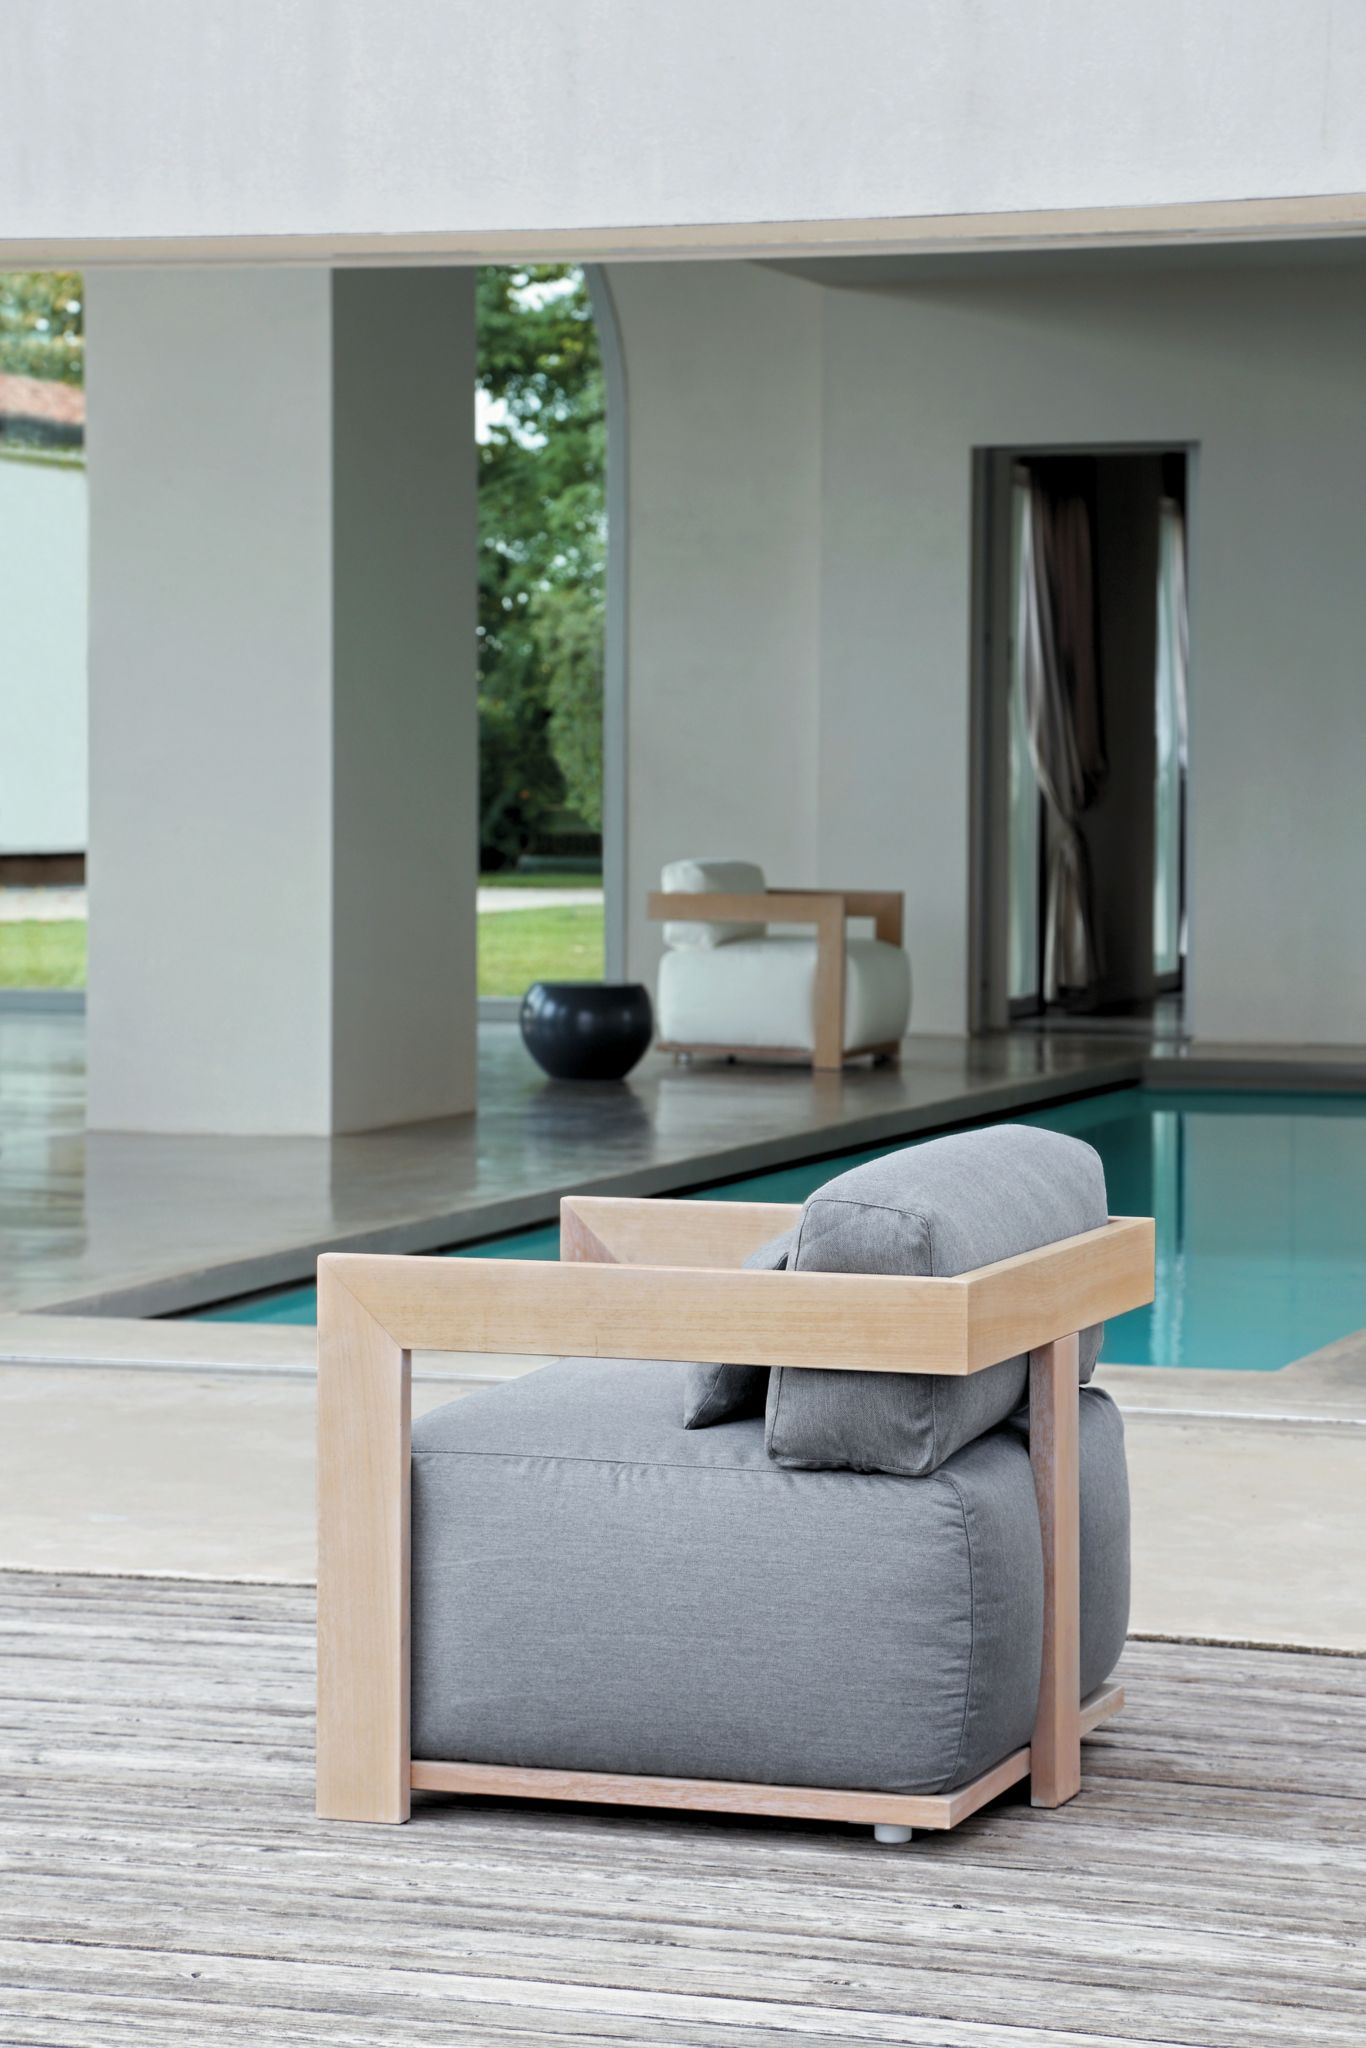 Möbel As Sha 72 - Cloud Collection Meridiani | Sofa Design, Möbeldesign, Zeitgenössische Möbel